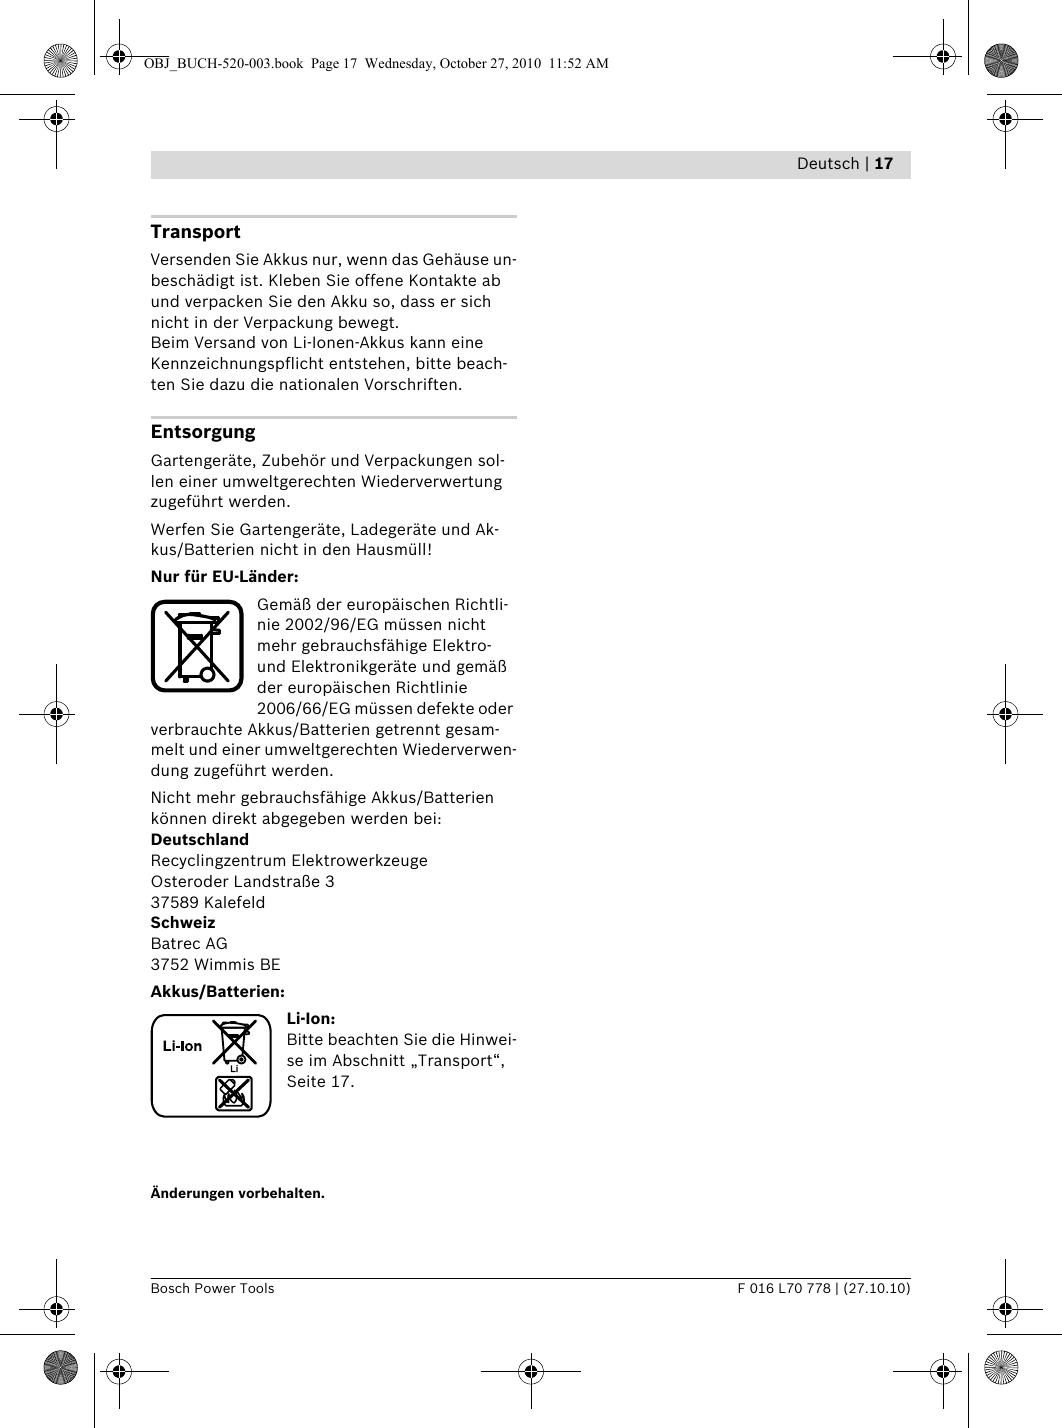 Art26LiManual User Guide Page 17